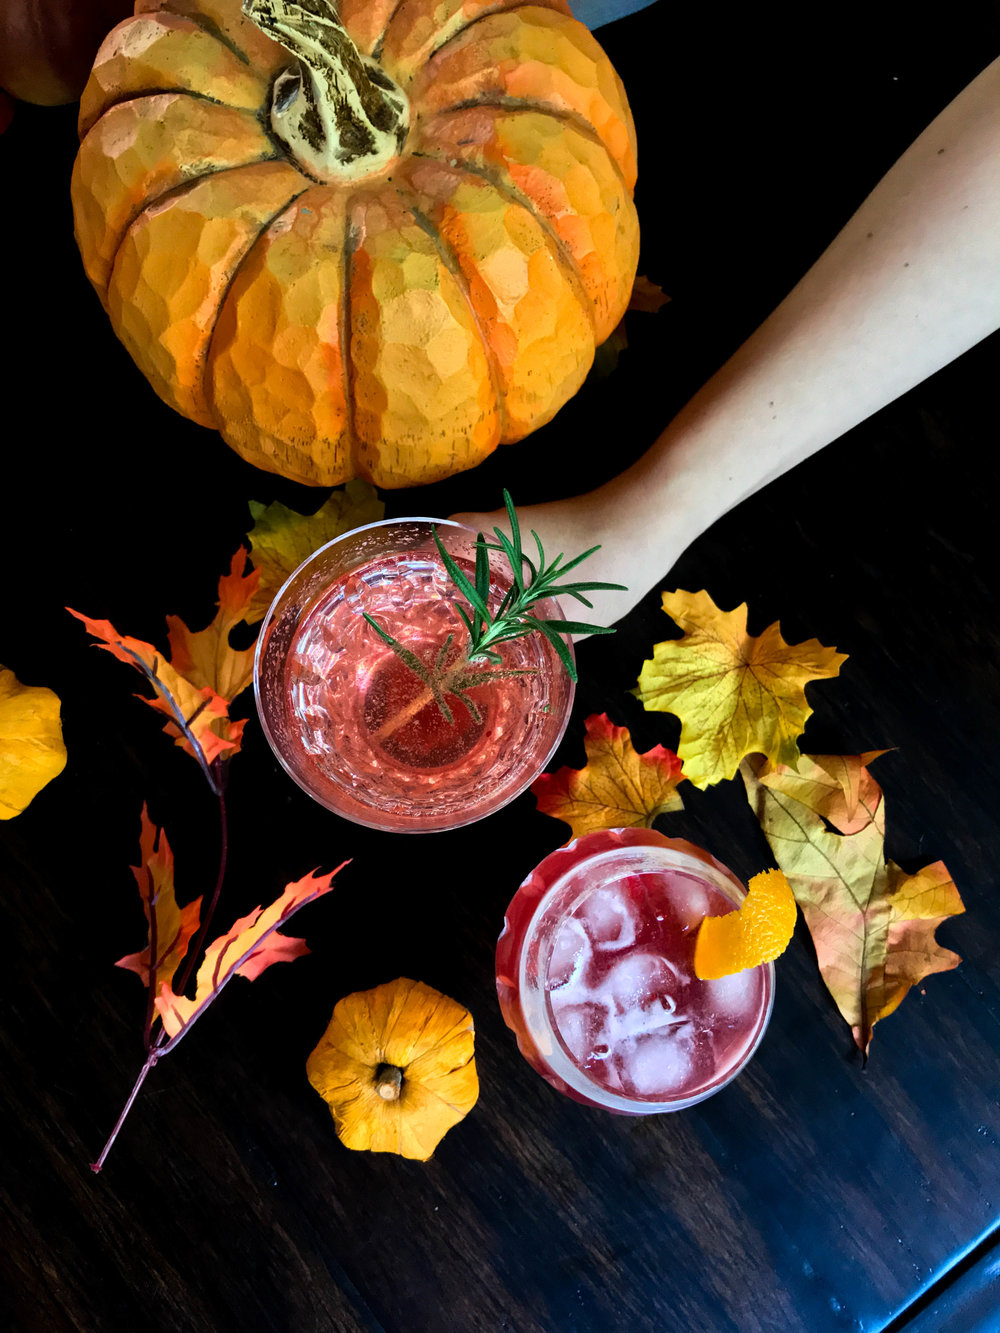 his and hers thanksgiving cocktails recipe, bourbon, prosecco, cranberry bourbon sipper, cranberry wine refresher, cocktails, cranberry simple syrup, thanksgiving drinks